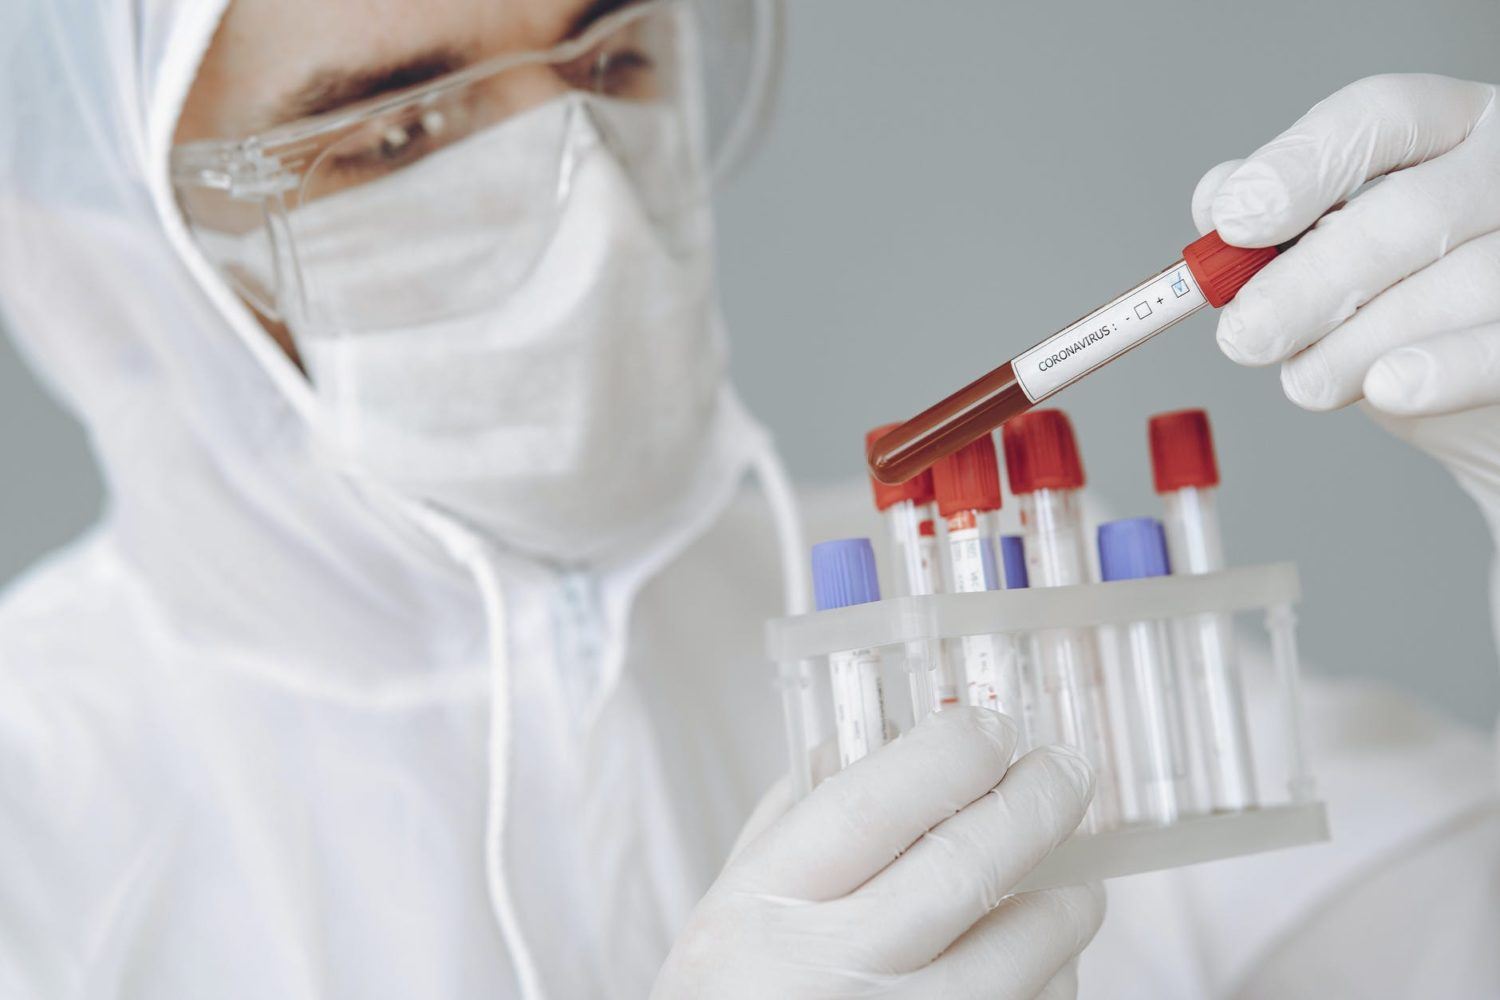 Clinical Stage Biotechnology Stocks